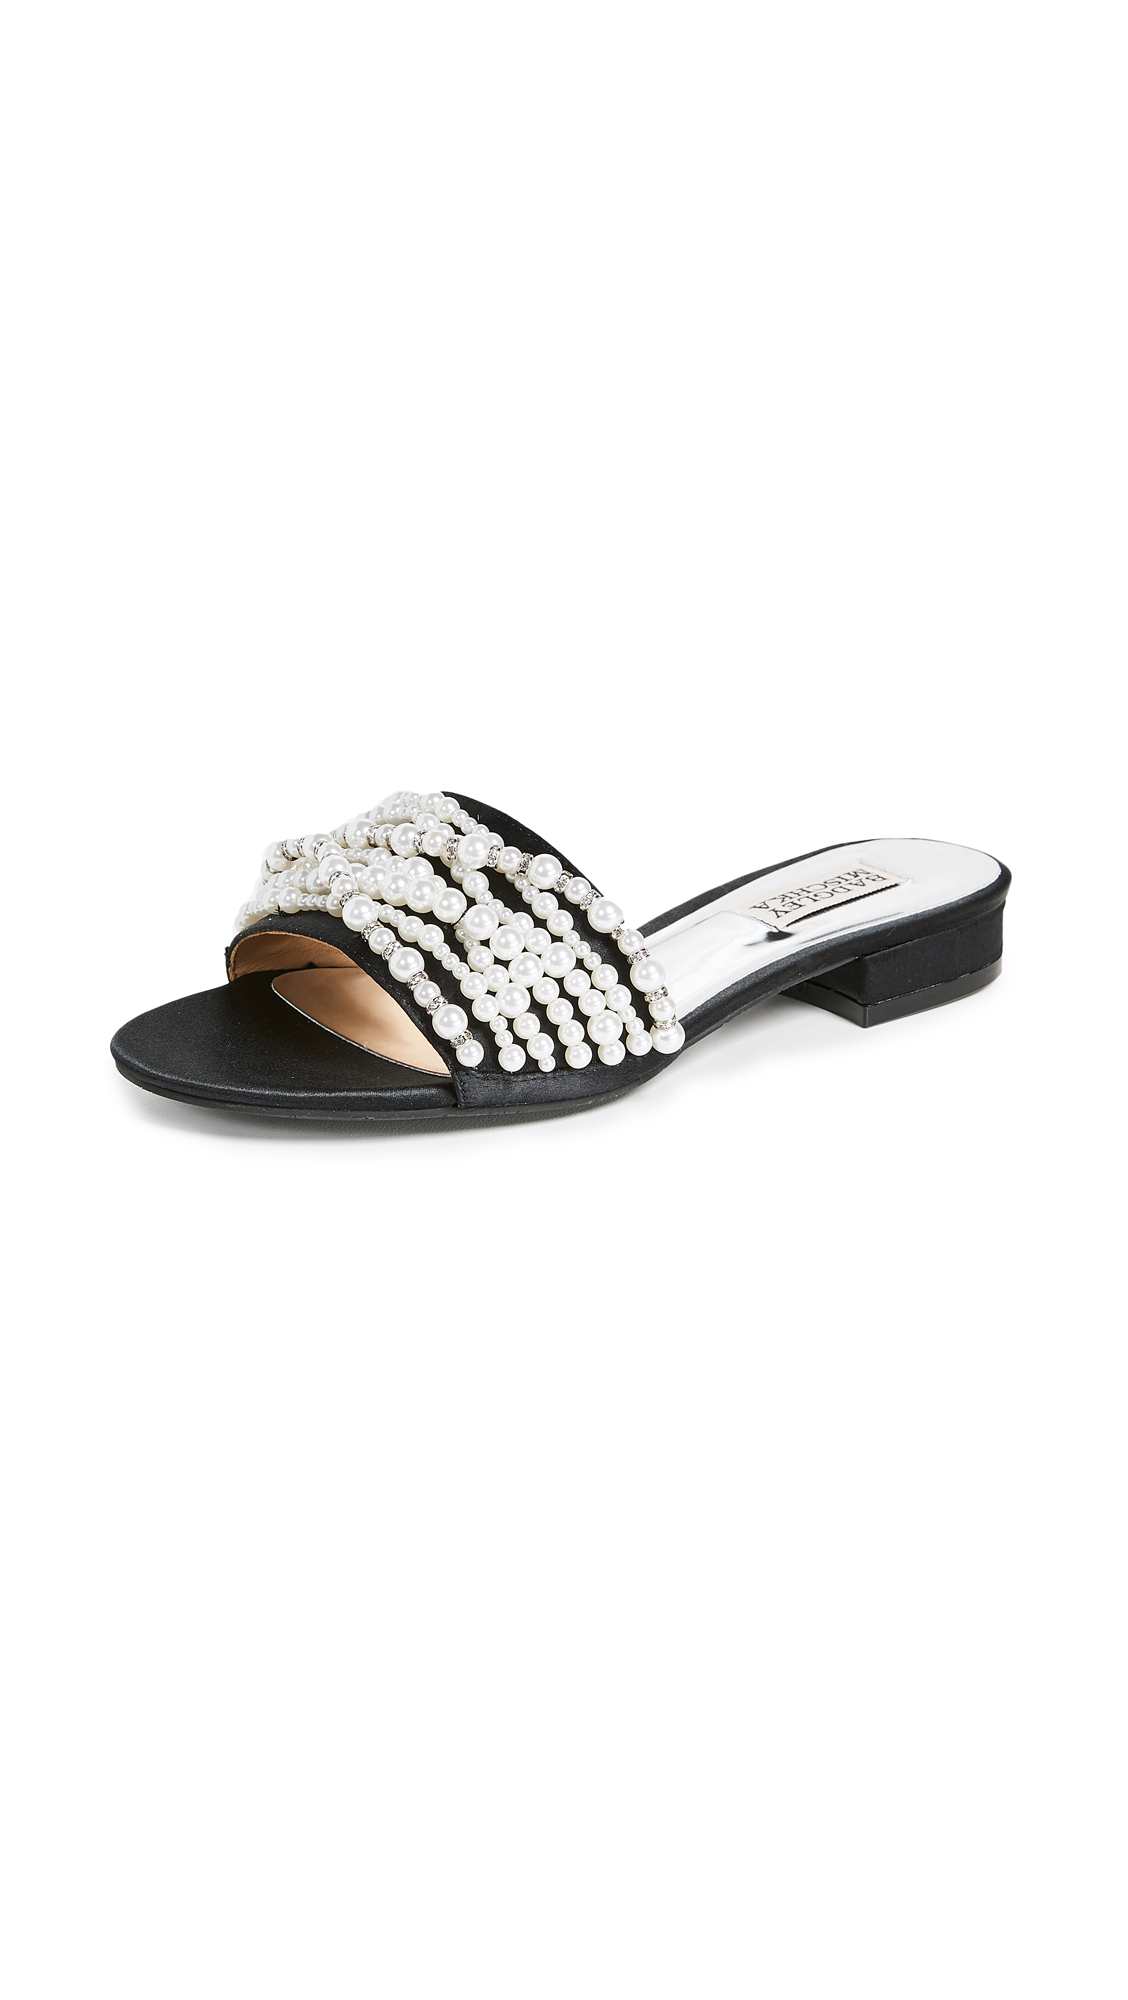 Badgley Mischka Florentina Slides